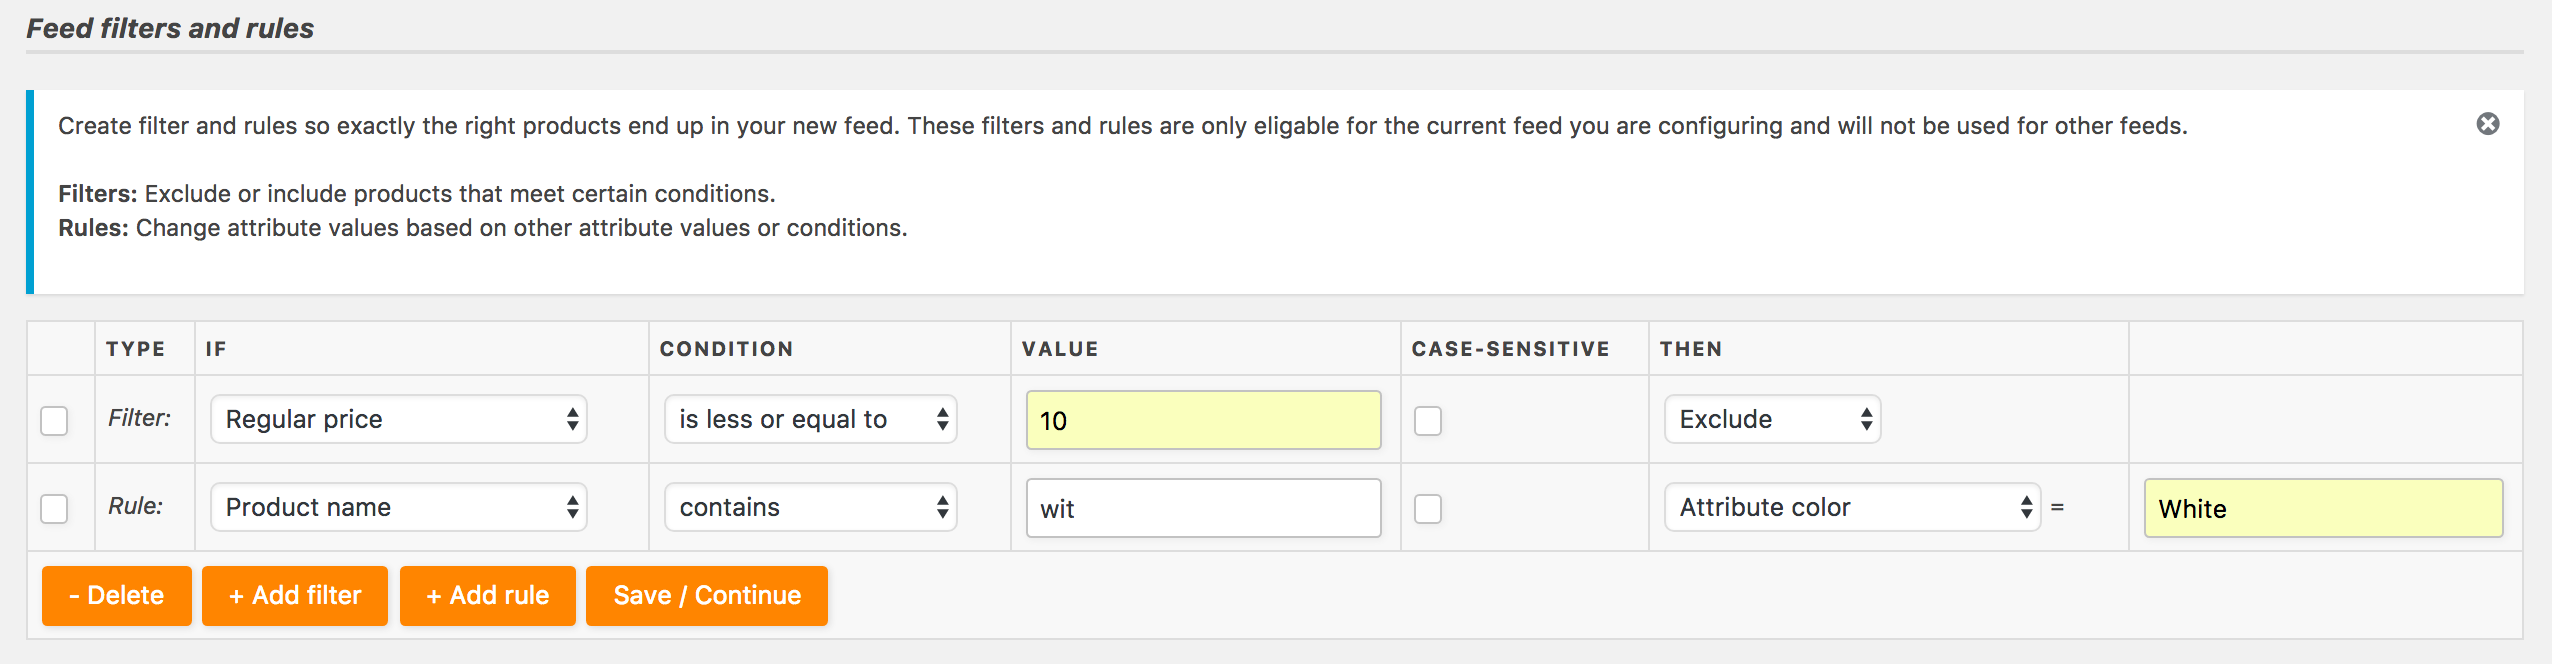 Set feed filter rules so only the profitable products end up in the product feed